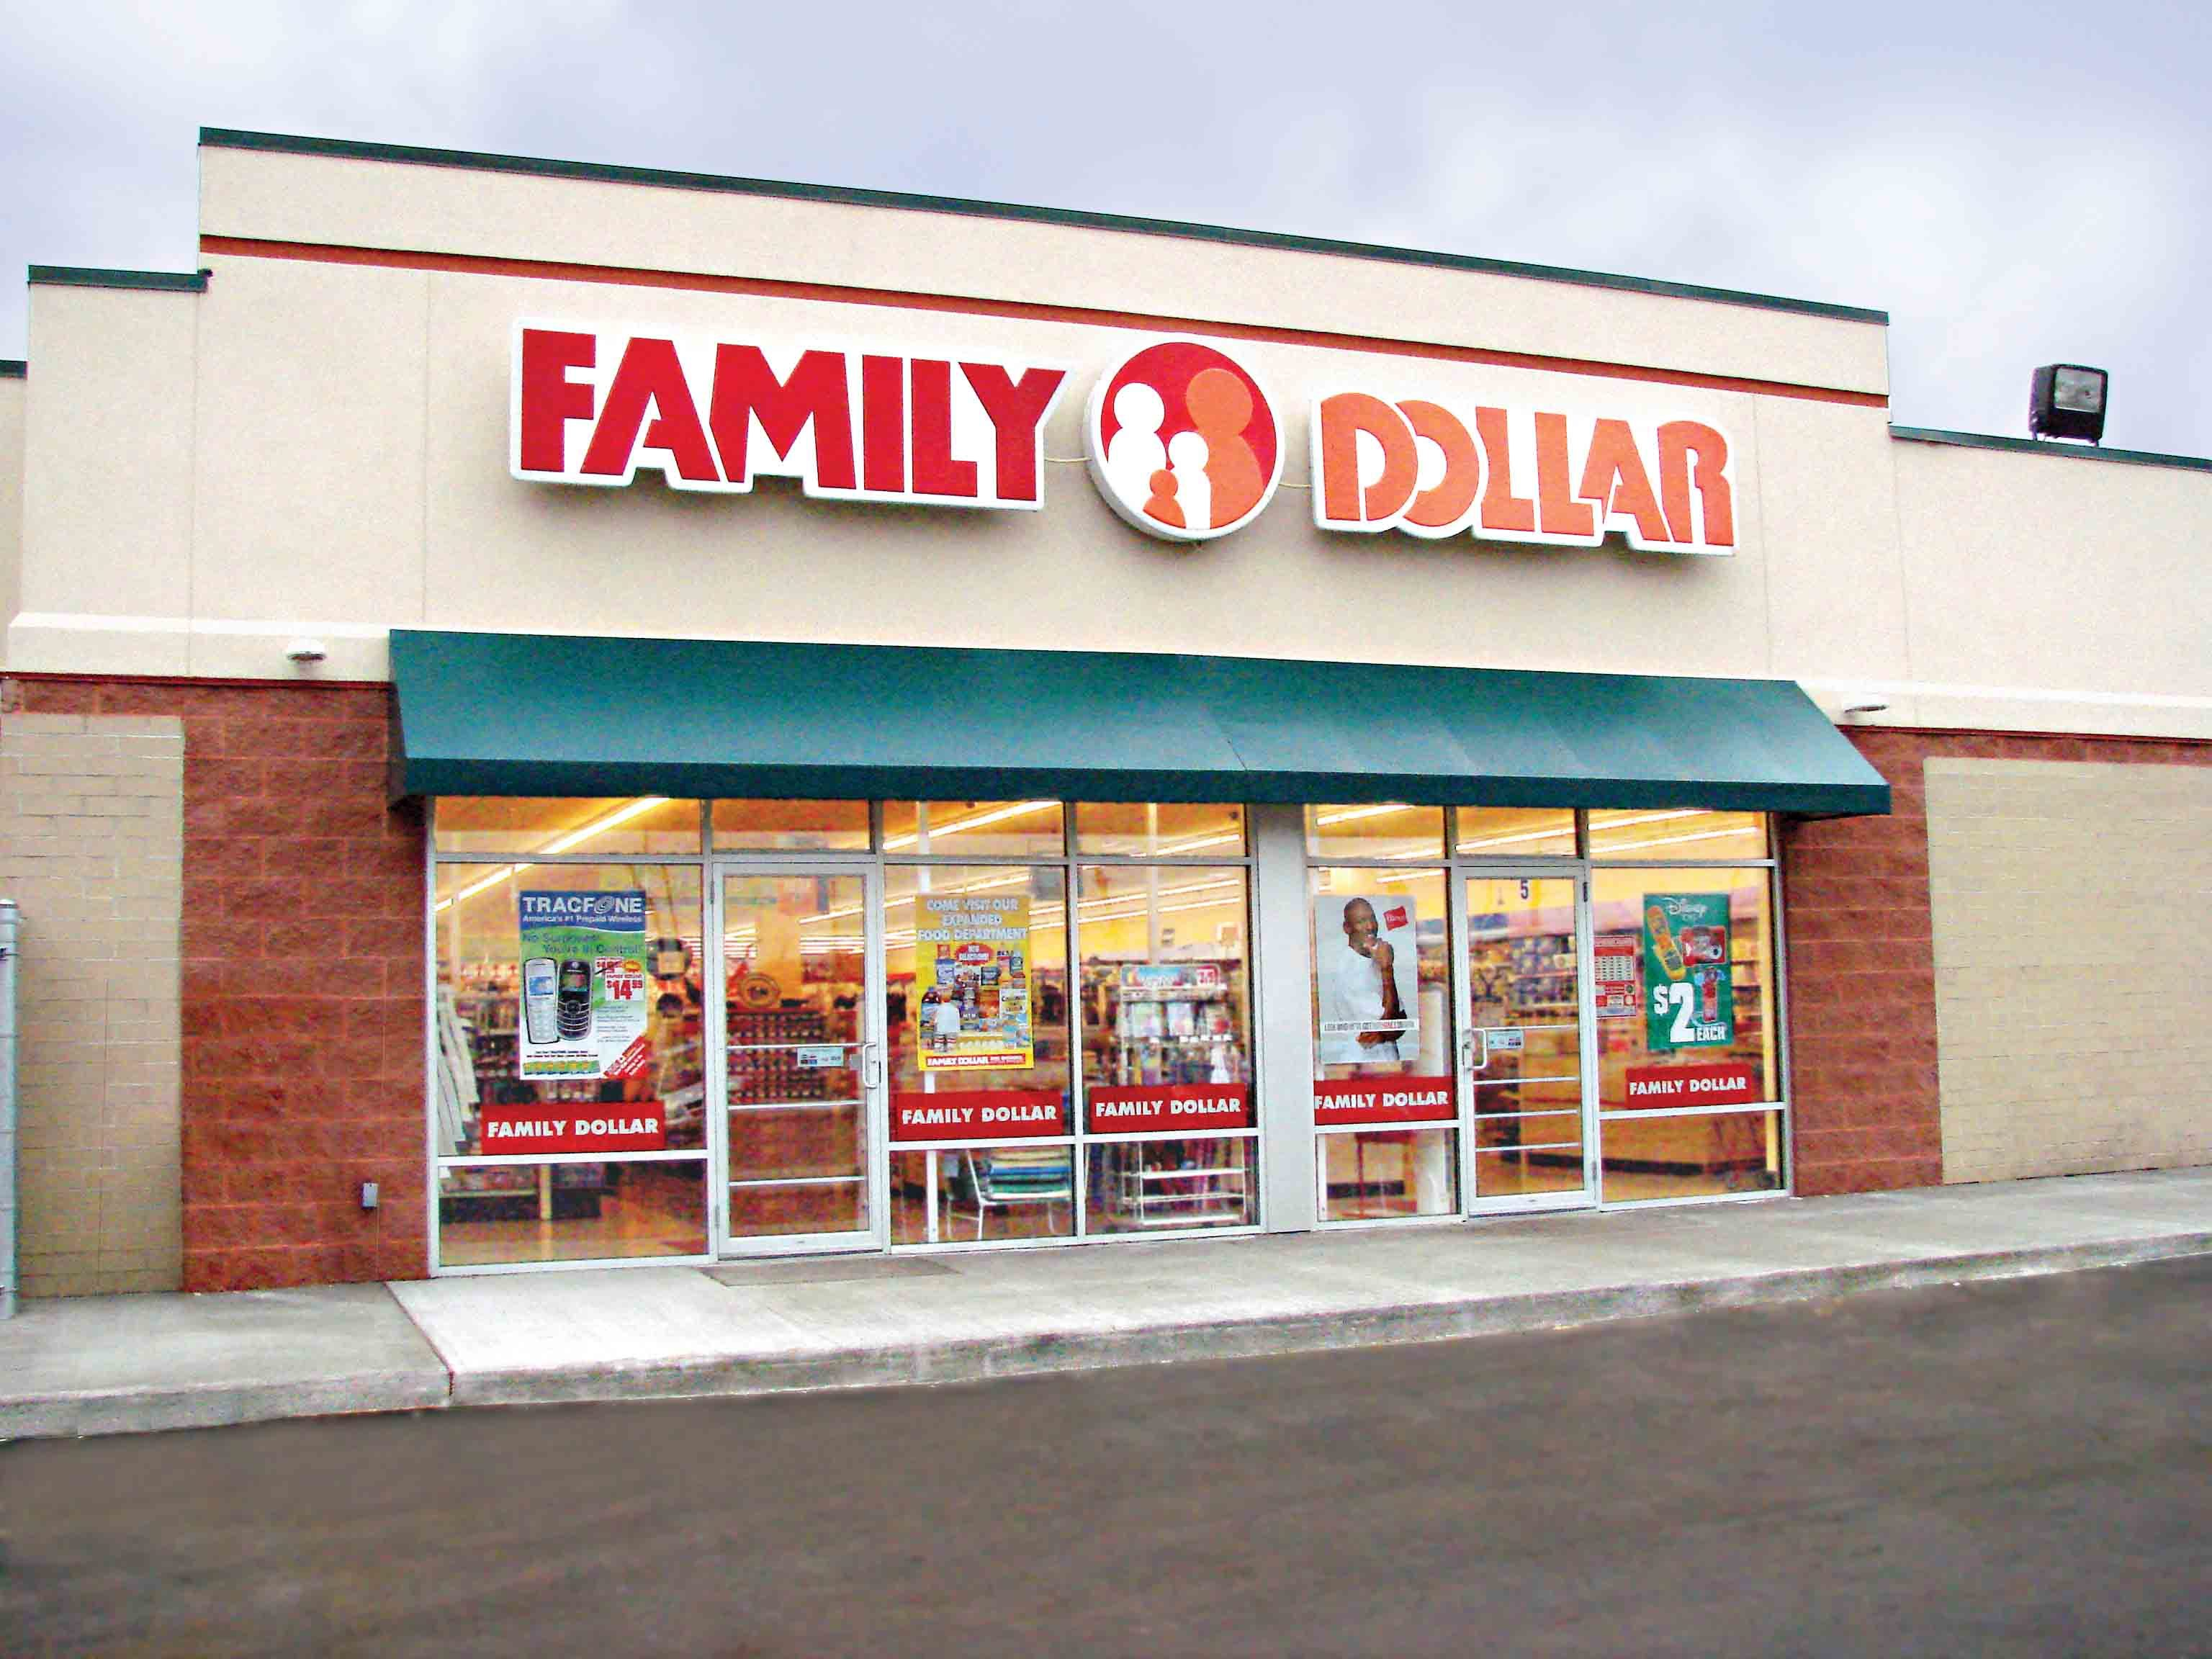 2 family dollar standingstore